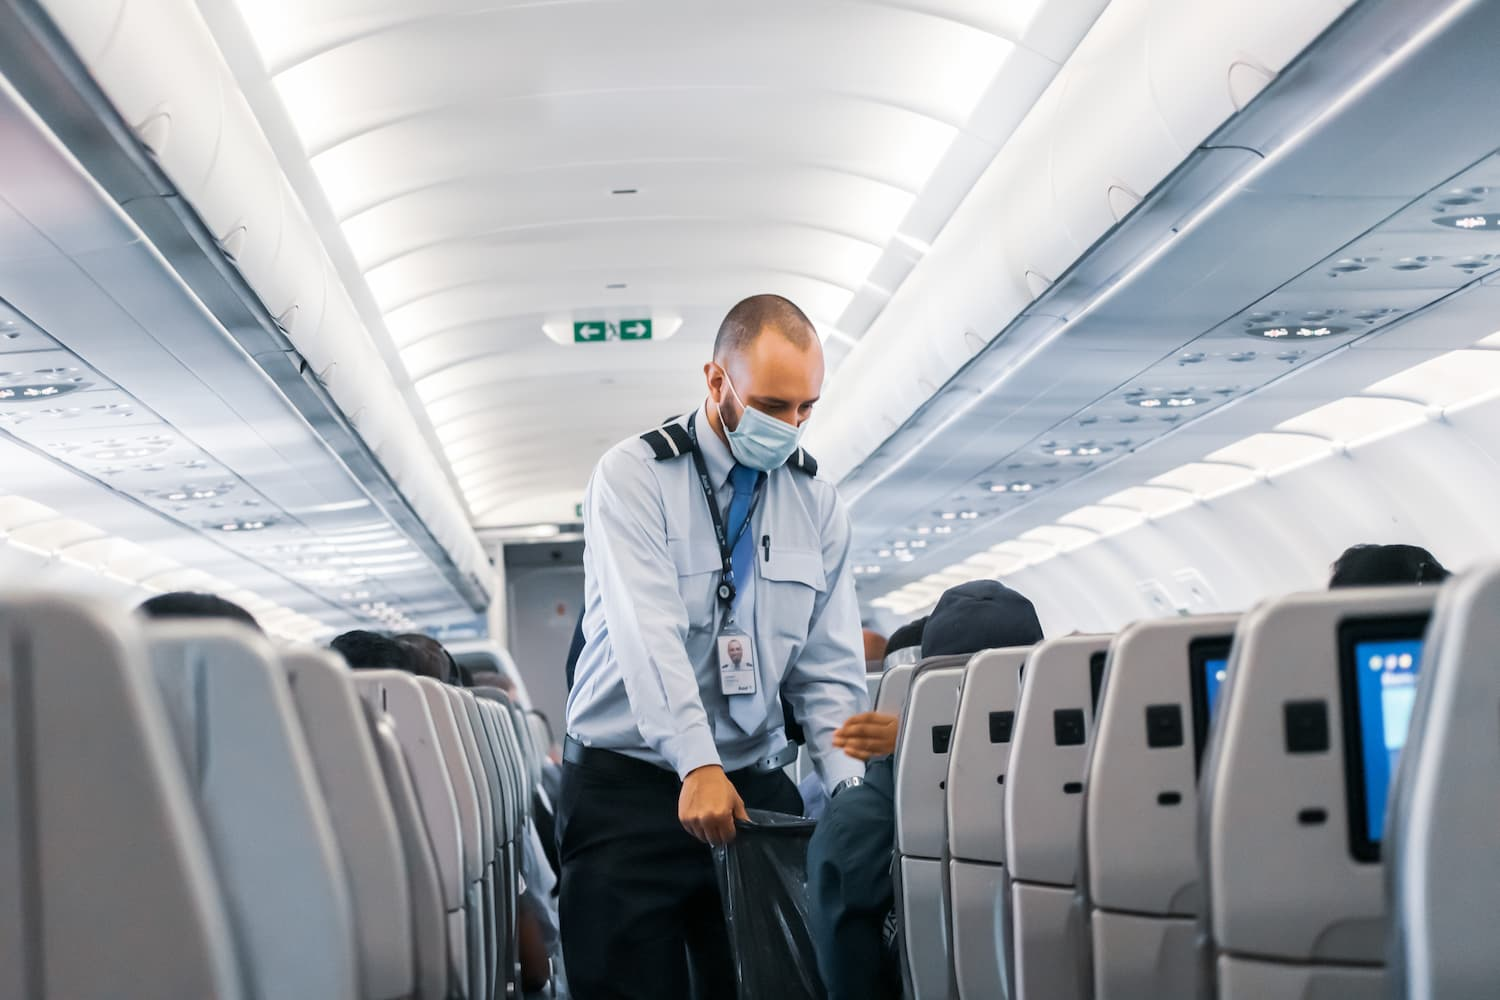 Prioritizing & Marketing Travel Safety Will Help Airlines Capture Rising Demand